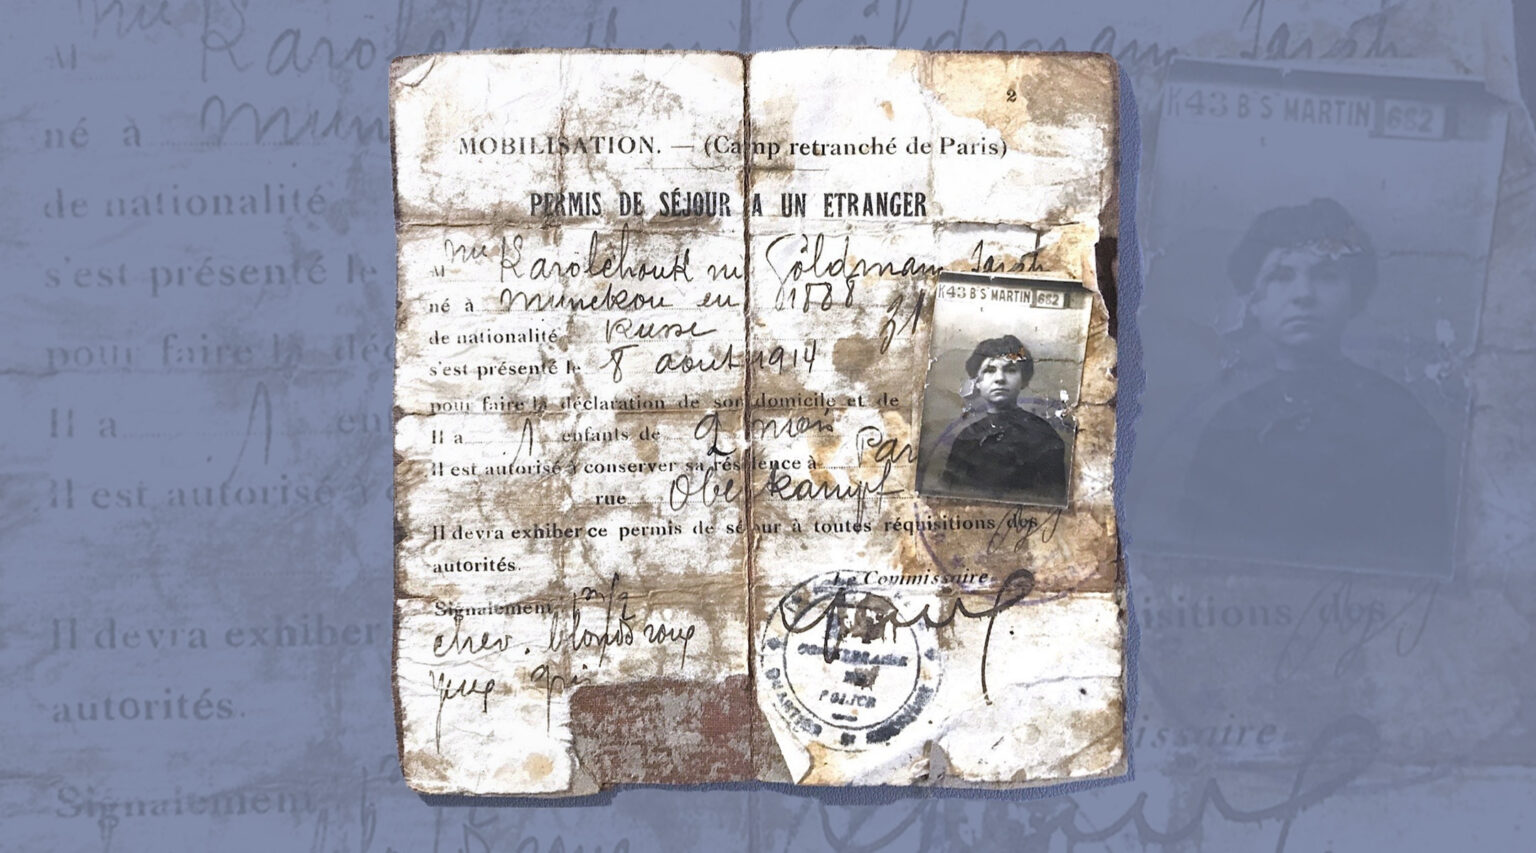 The author's grandmother's French residence permit from 1914 includes a spelling of her husband's original name, Karolchouk, before he and his brothers changed it to Carroll.